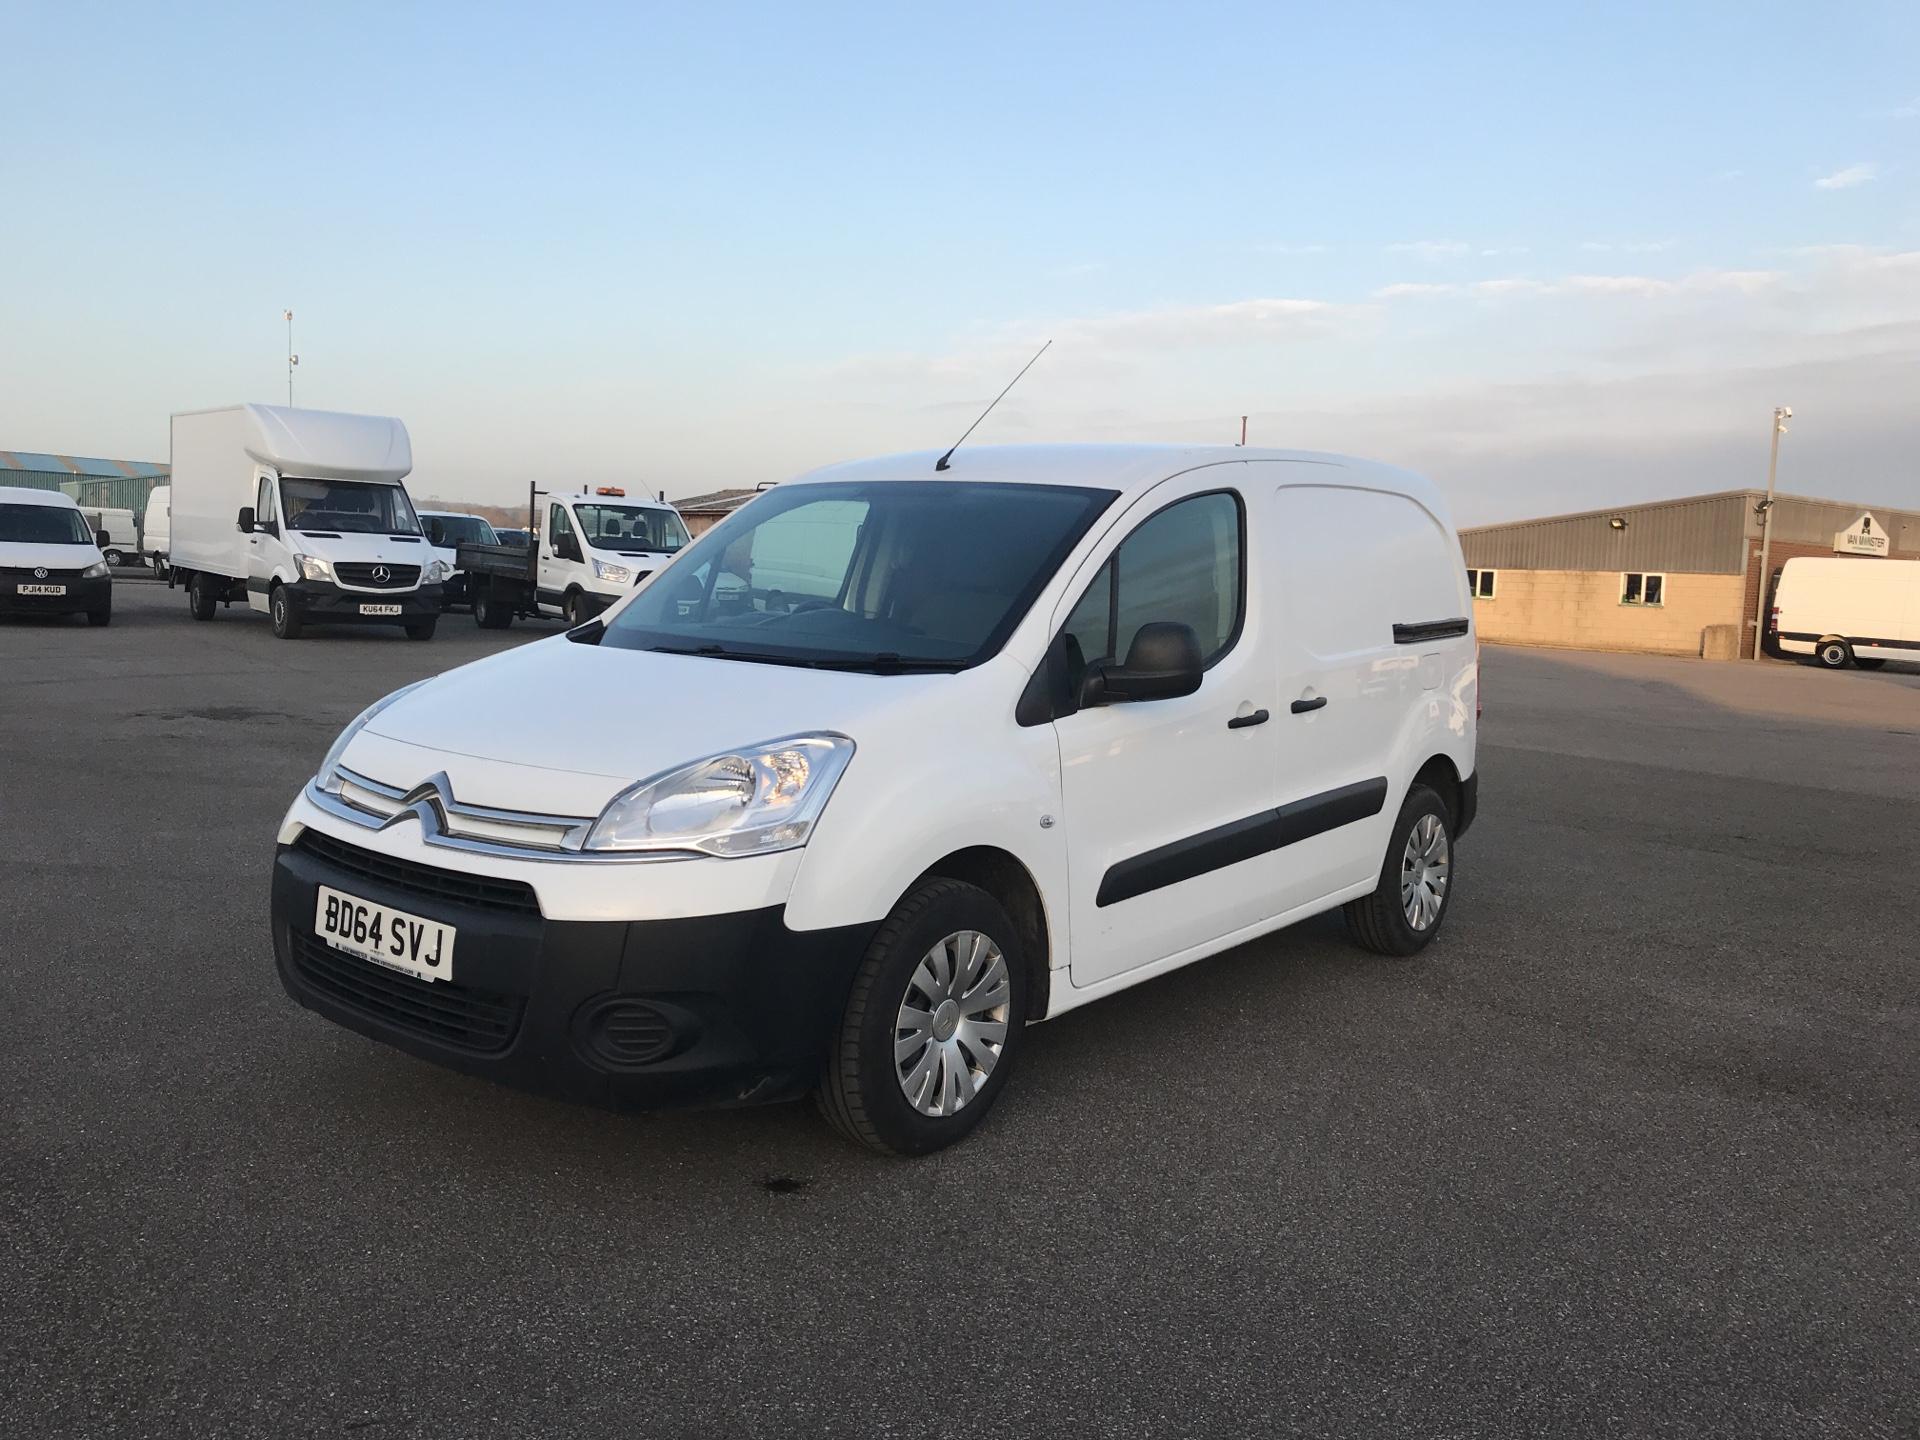 2014 Citroen Berlingo L1 DIESEL 1.6 HDI 625KG X 90PS (SLD) EURO 5. VALUE RANGE VEHICLE - CONDITION REFLECTED IN PRICE (BD64SVJ) Image 7